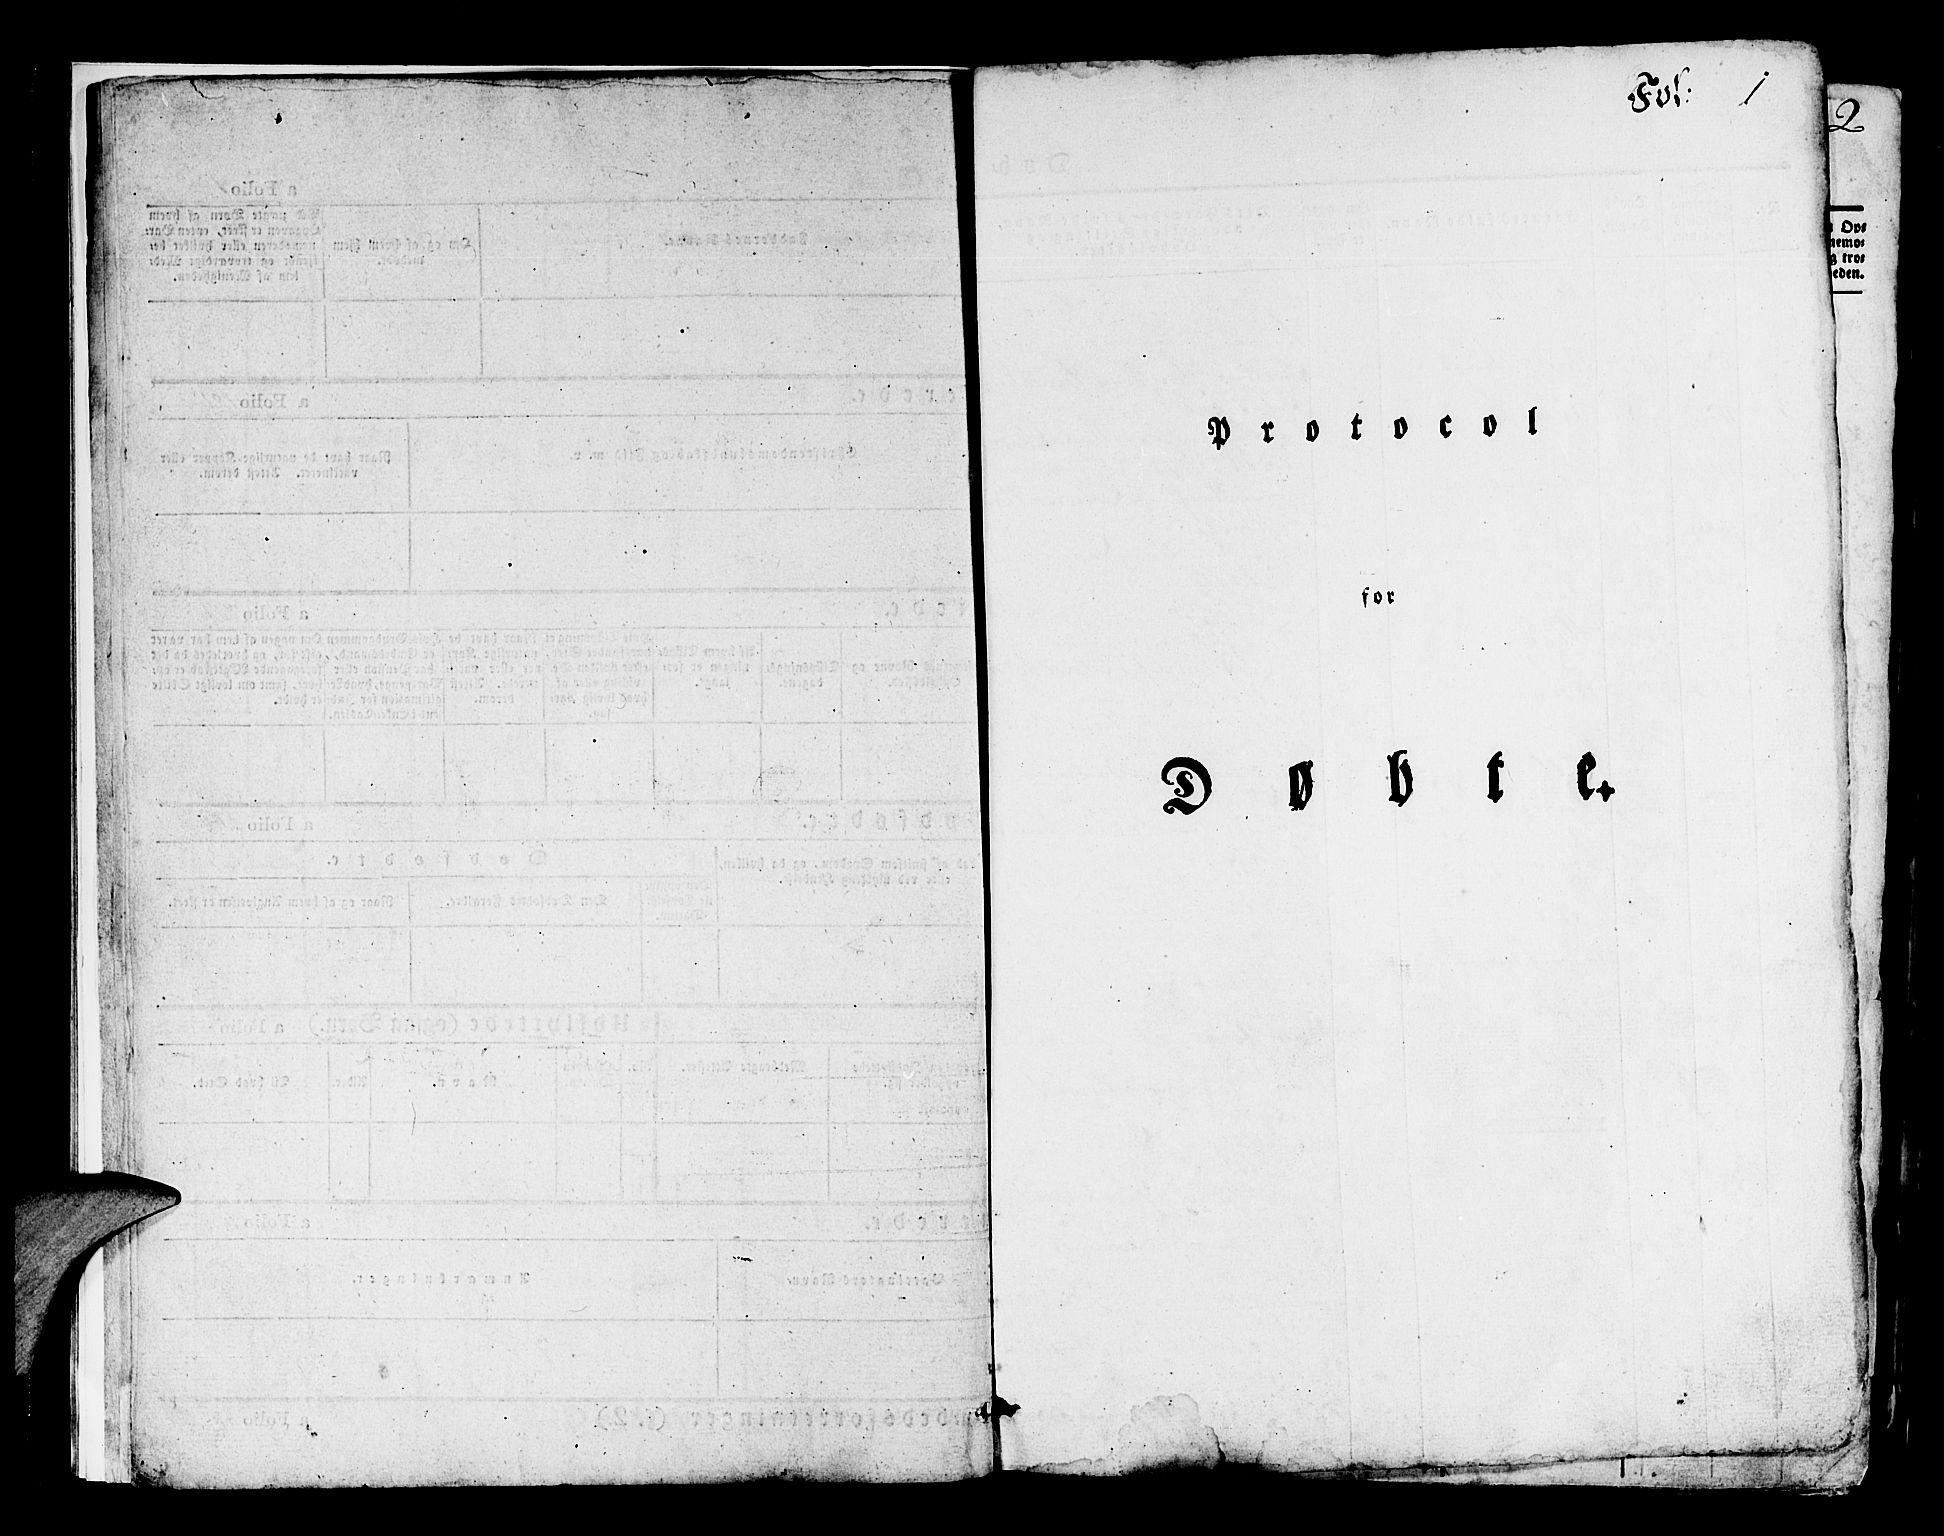 SAB, Os sokneprestembete*, Parish register (official) no. A 14, 1826-1839, p. 1